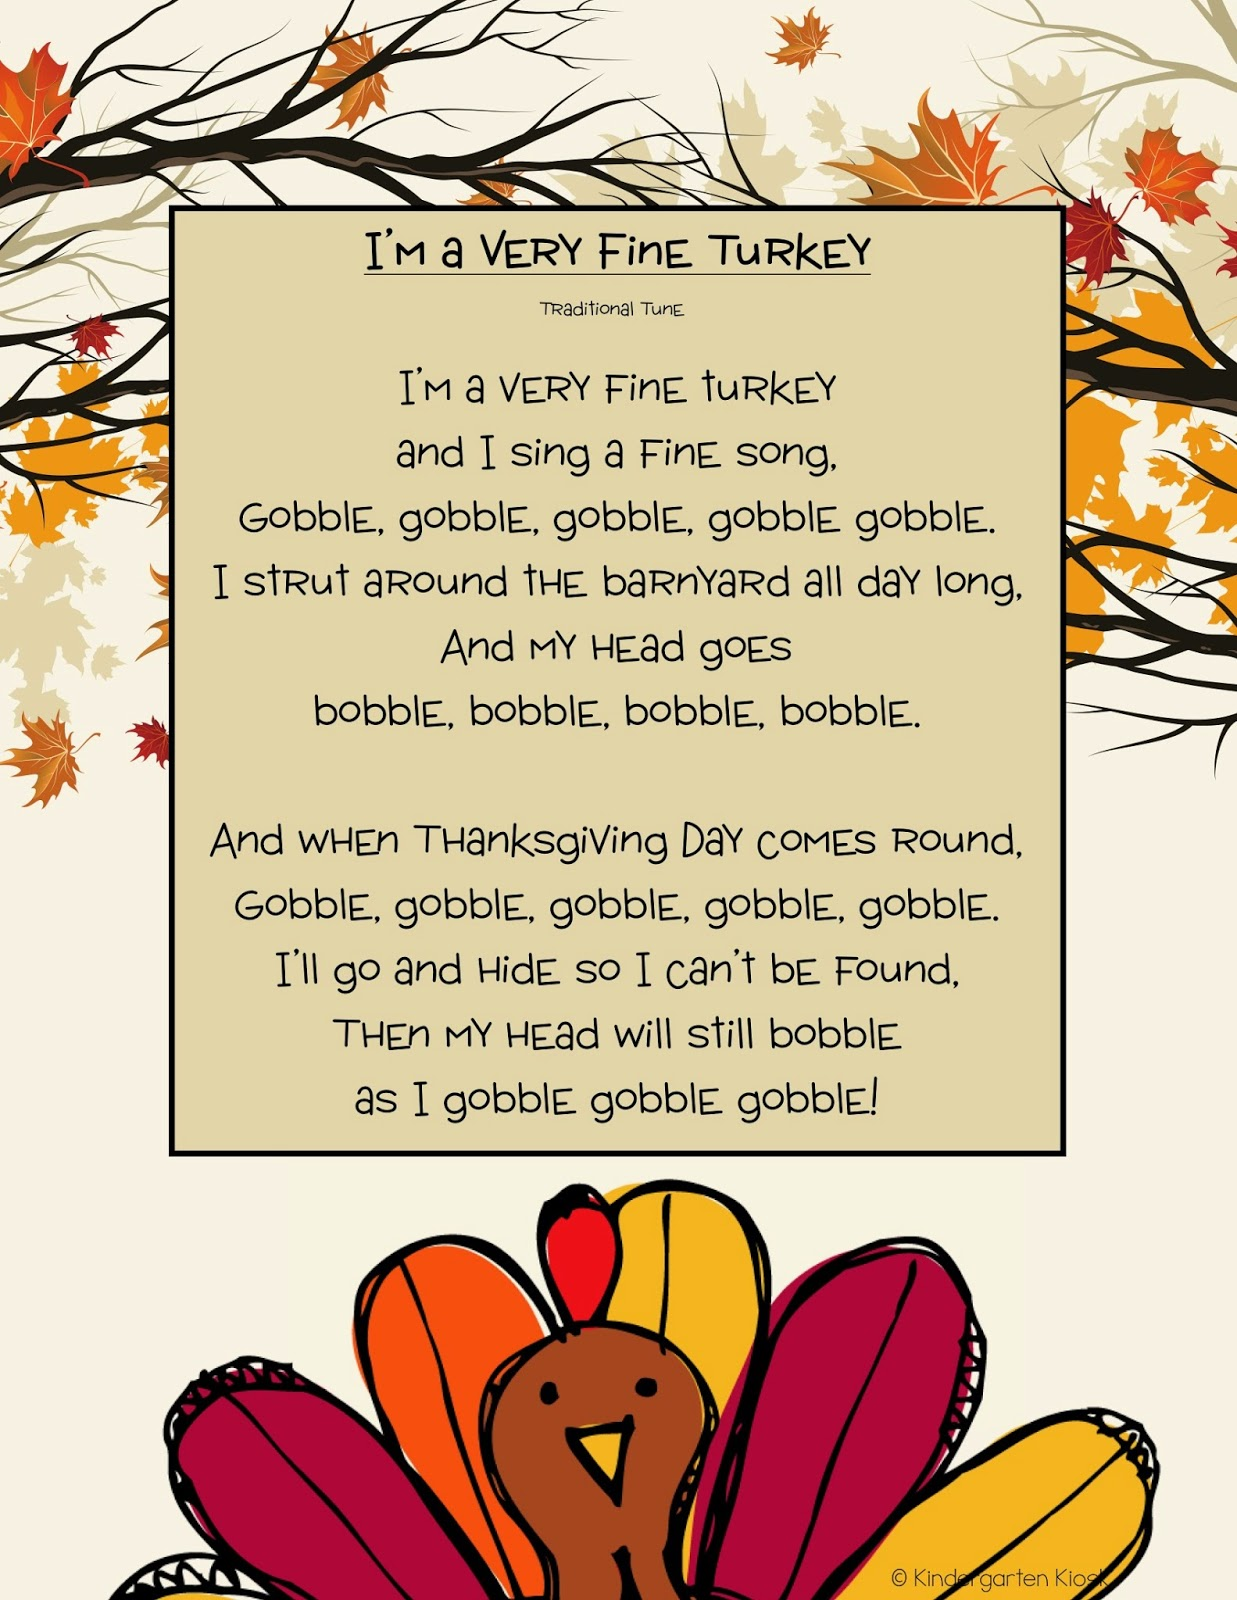 Kindergarten Kiosk Thanksgiving Fun Amp A Freebie